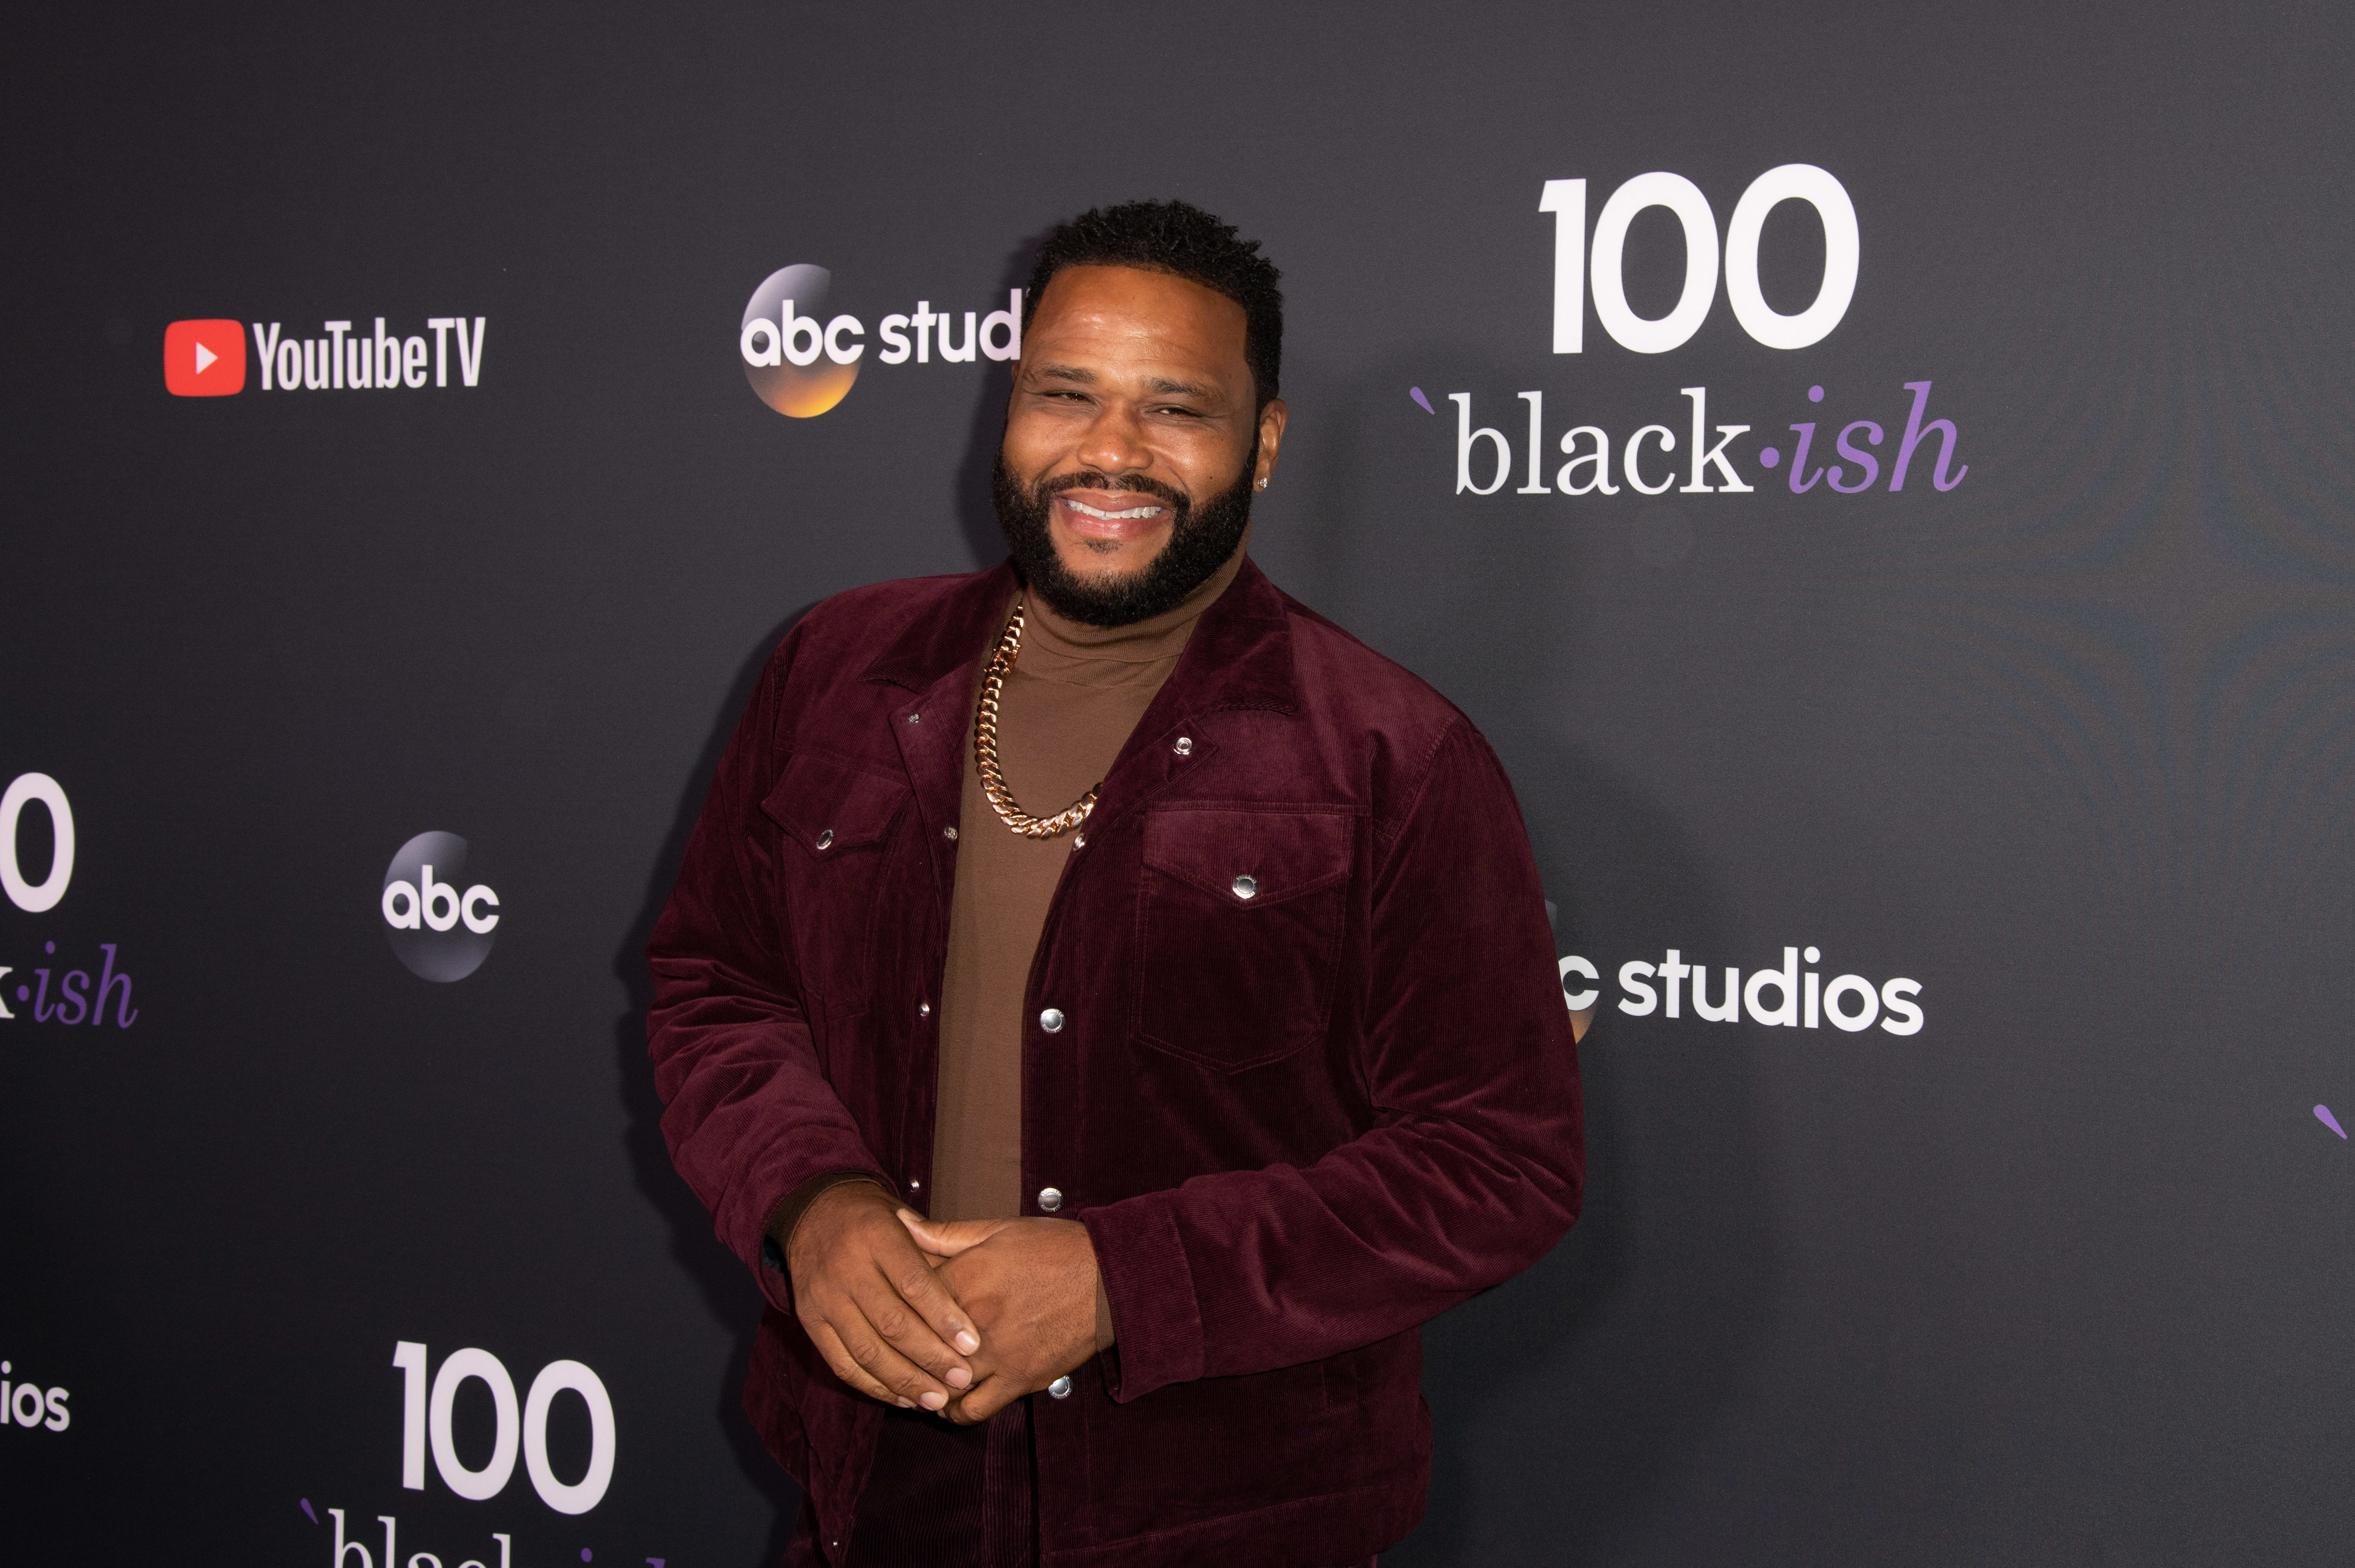 Black-ish 100th Episode Celebration